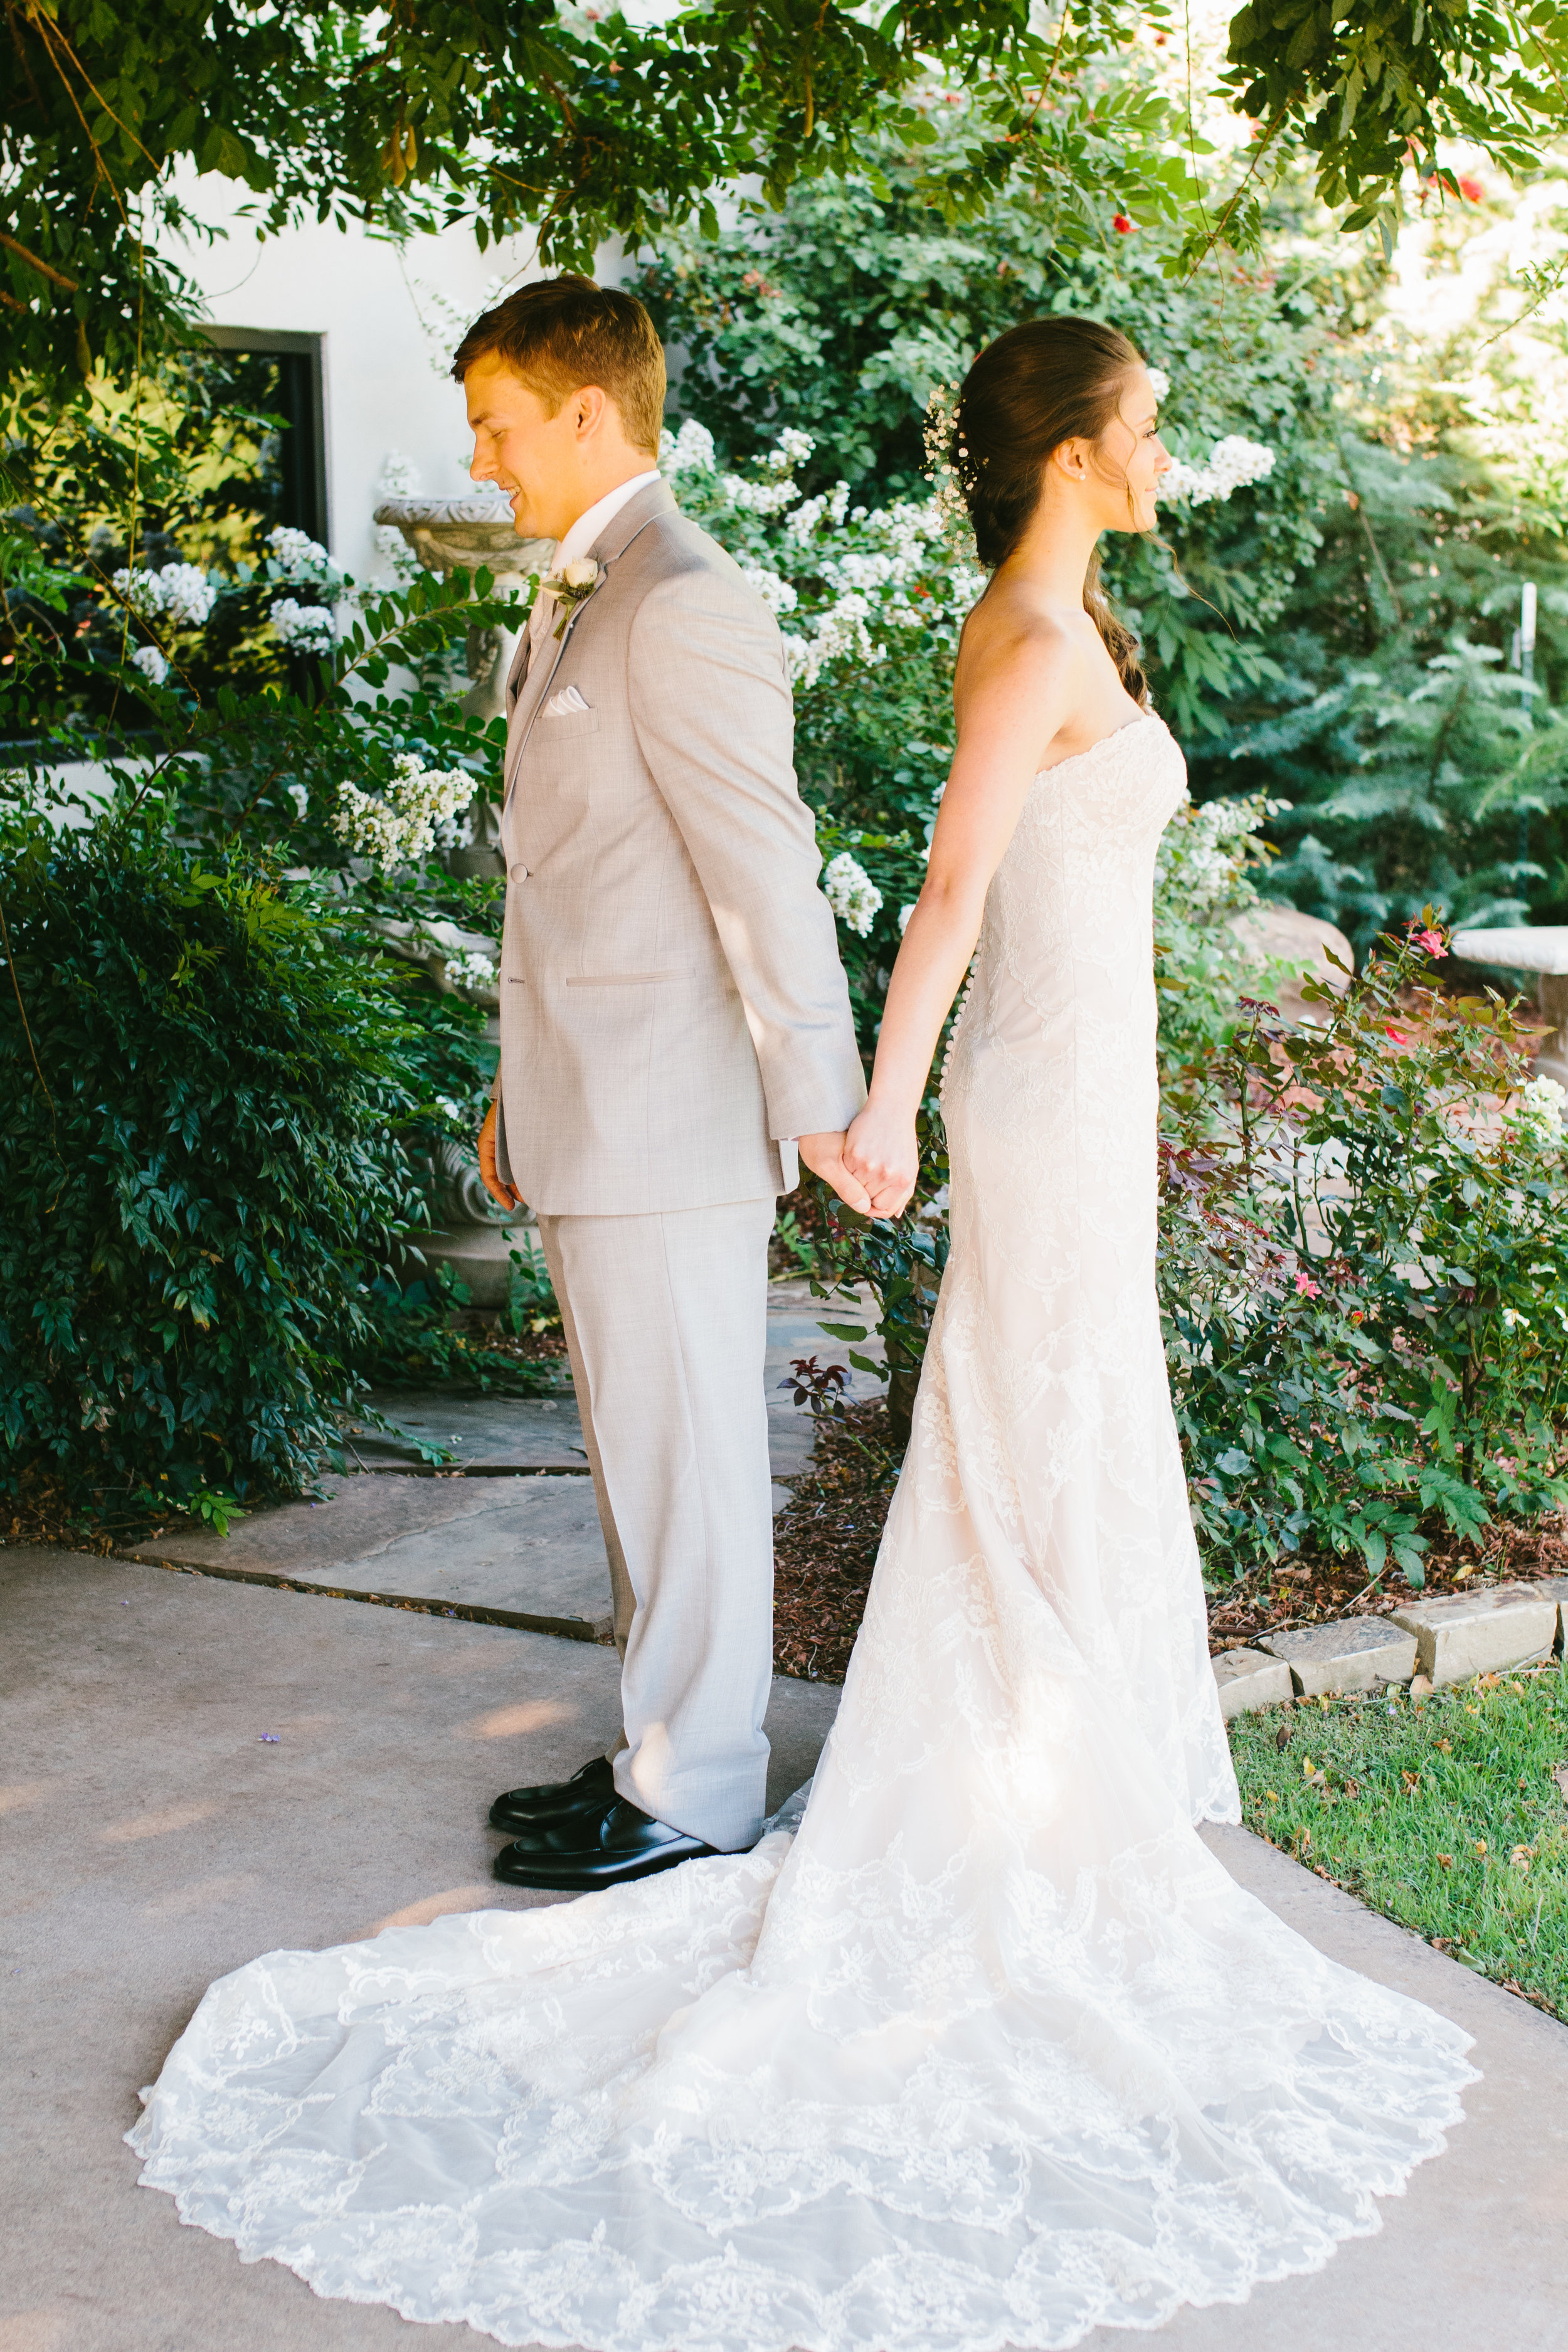 First Look PHotos - A Champagne + Blush Oklahoma Wedding - Meditations Event Center - From Britt's Eye View Photography